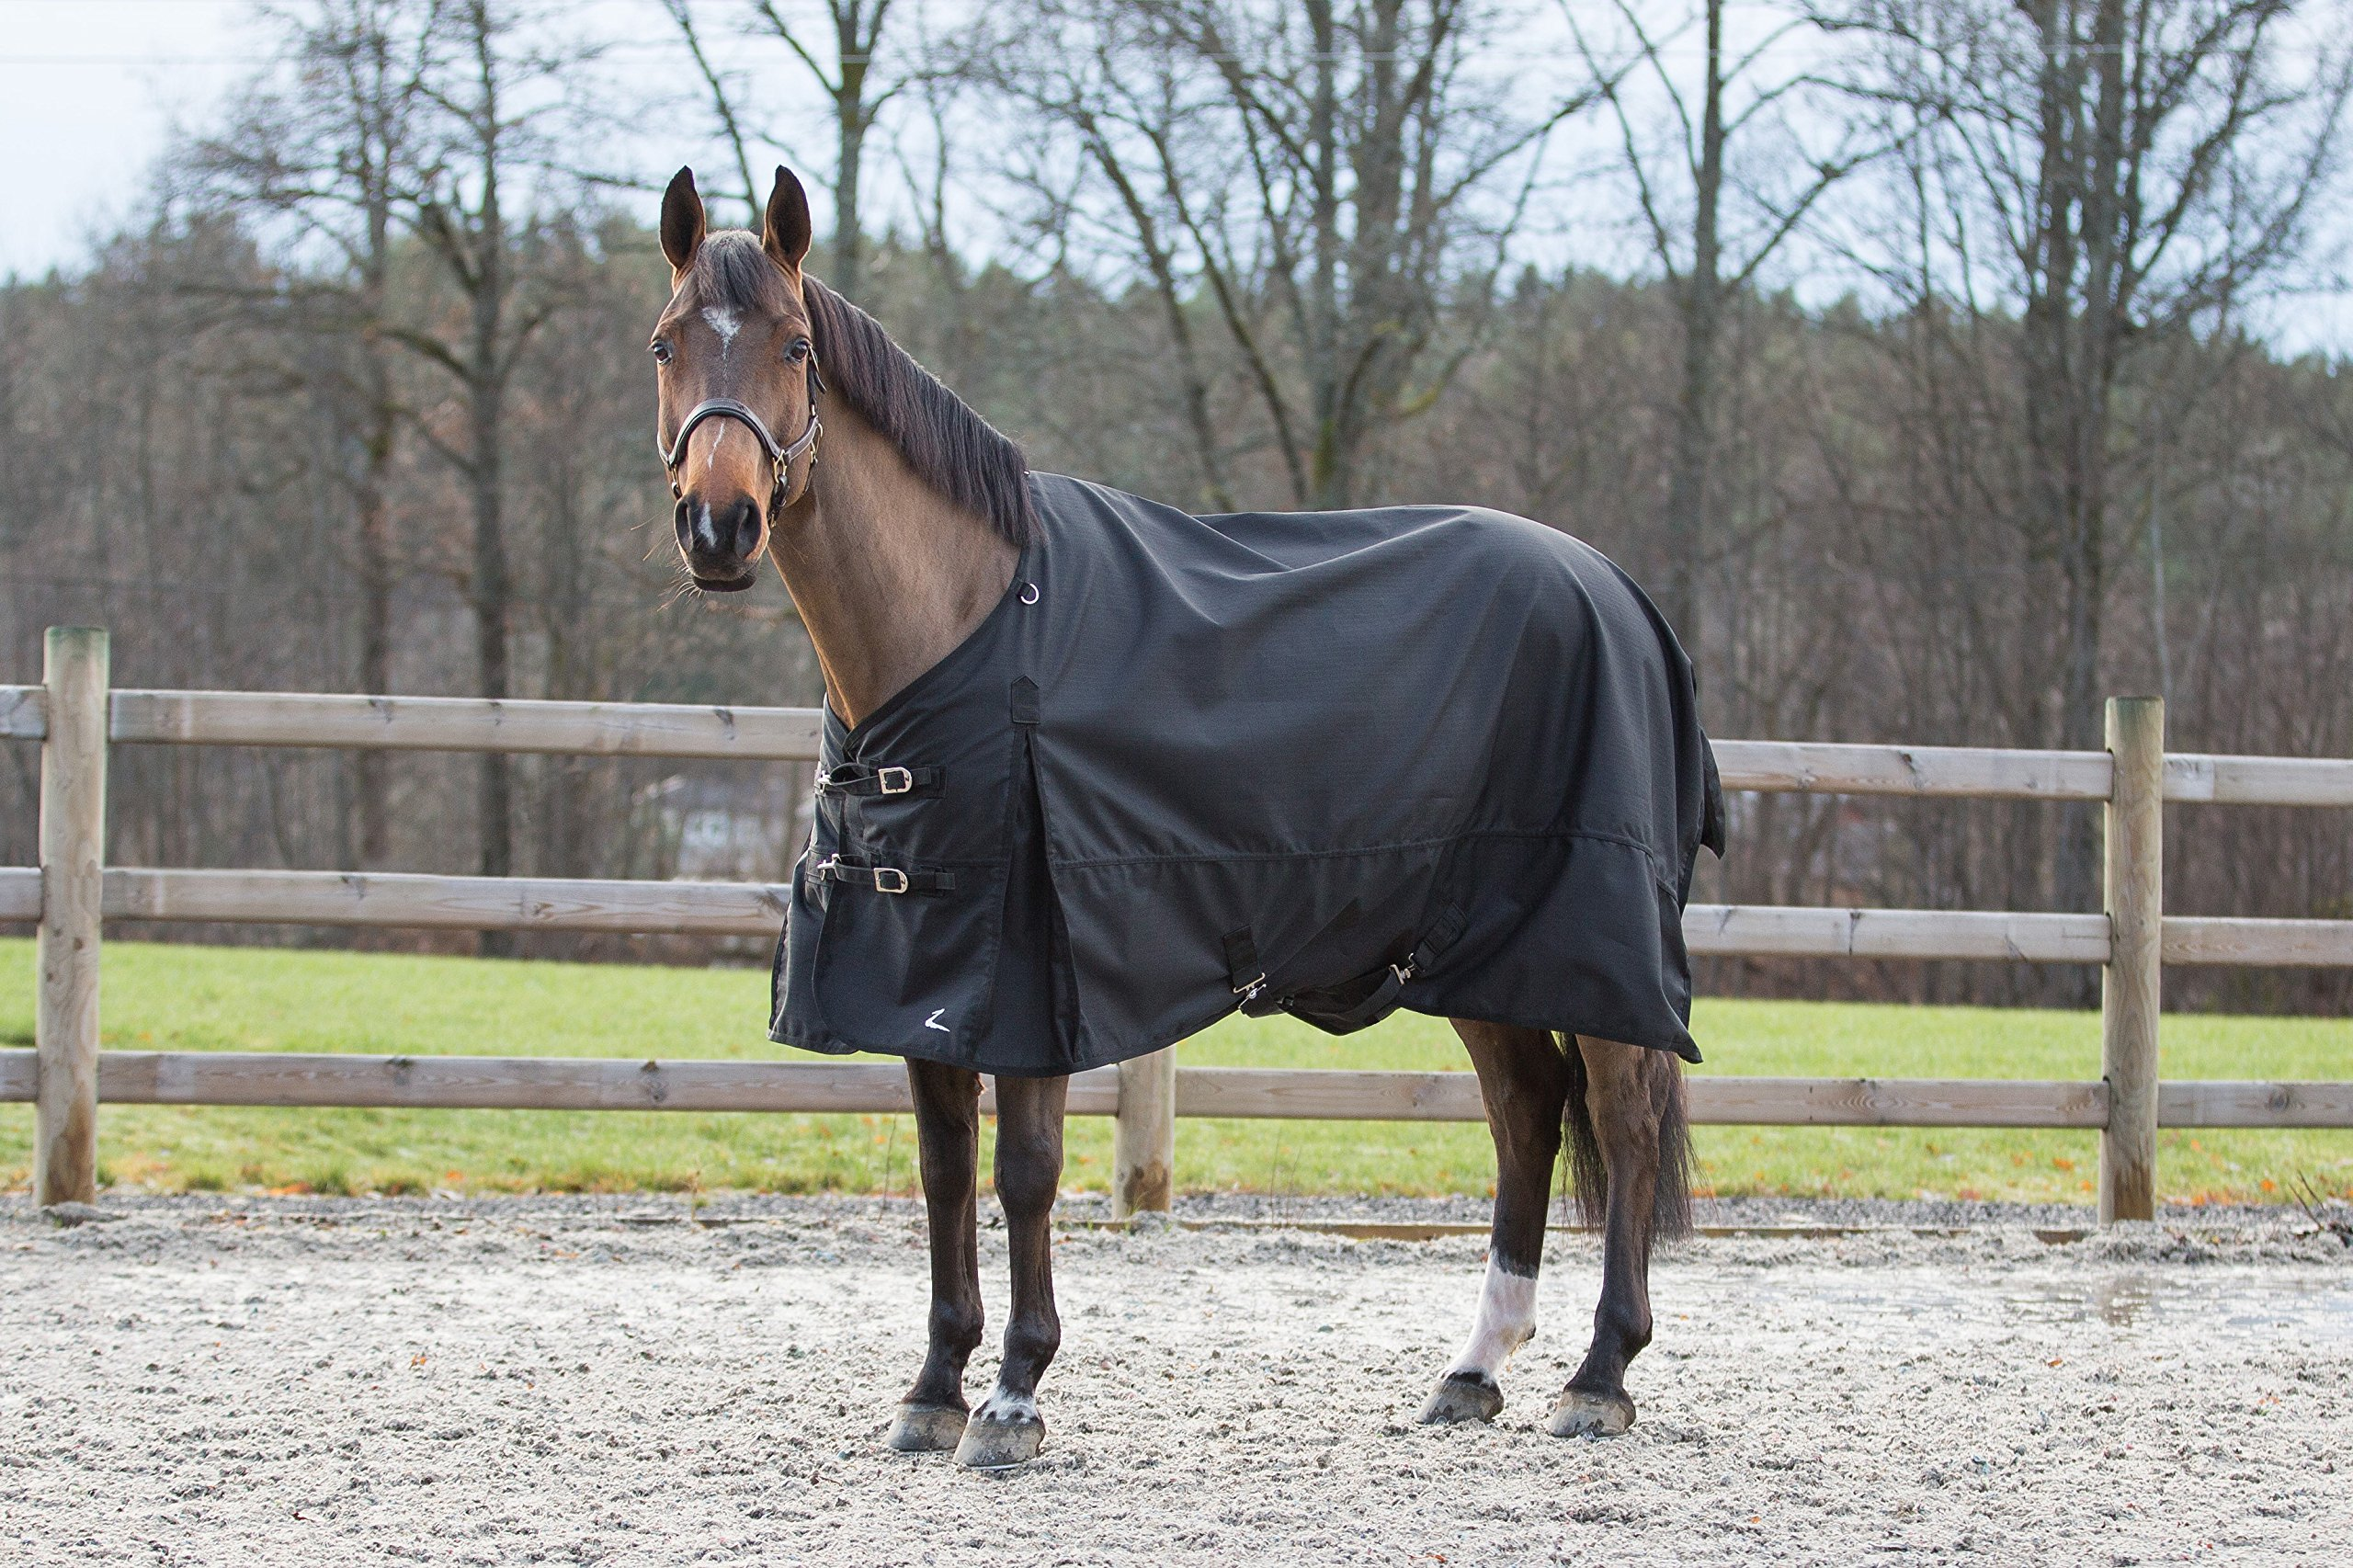 Horze Nevada 1200D Waterproof Turnout Sheet - Black - Size: 84